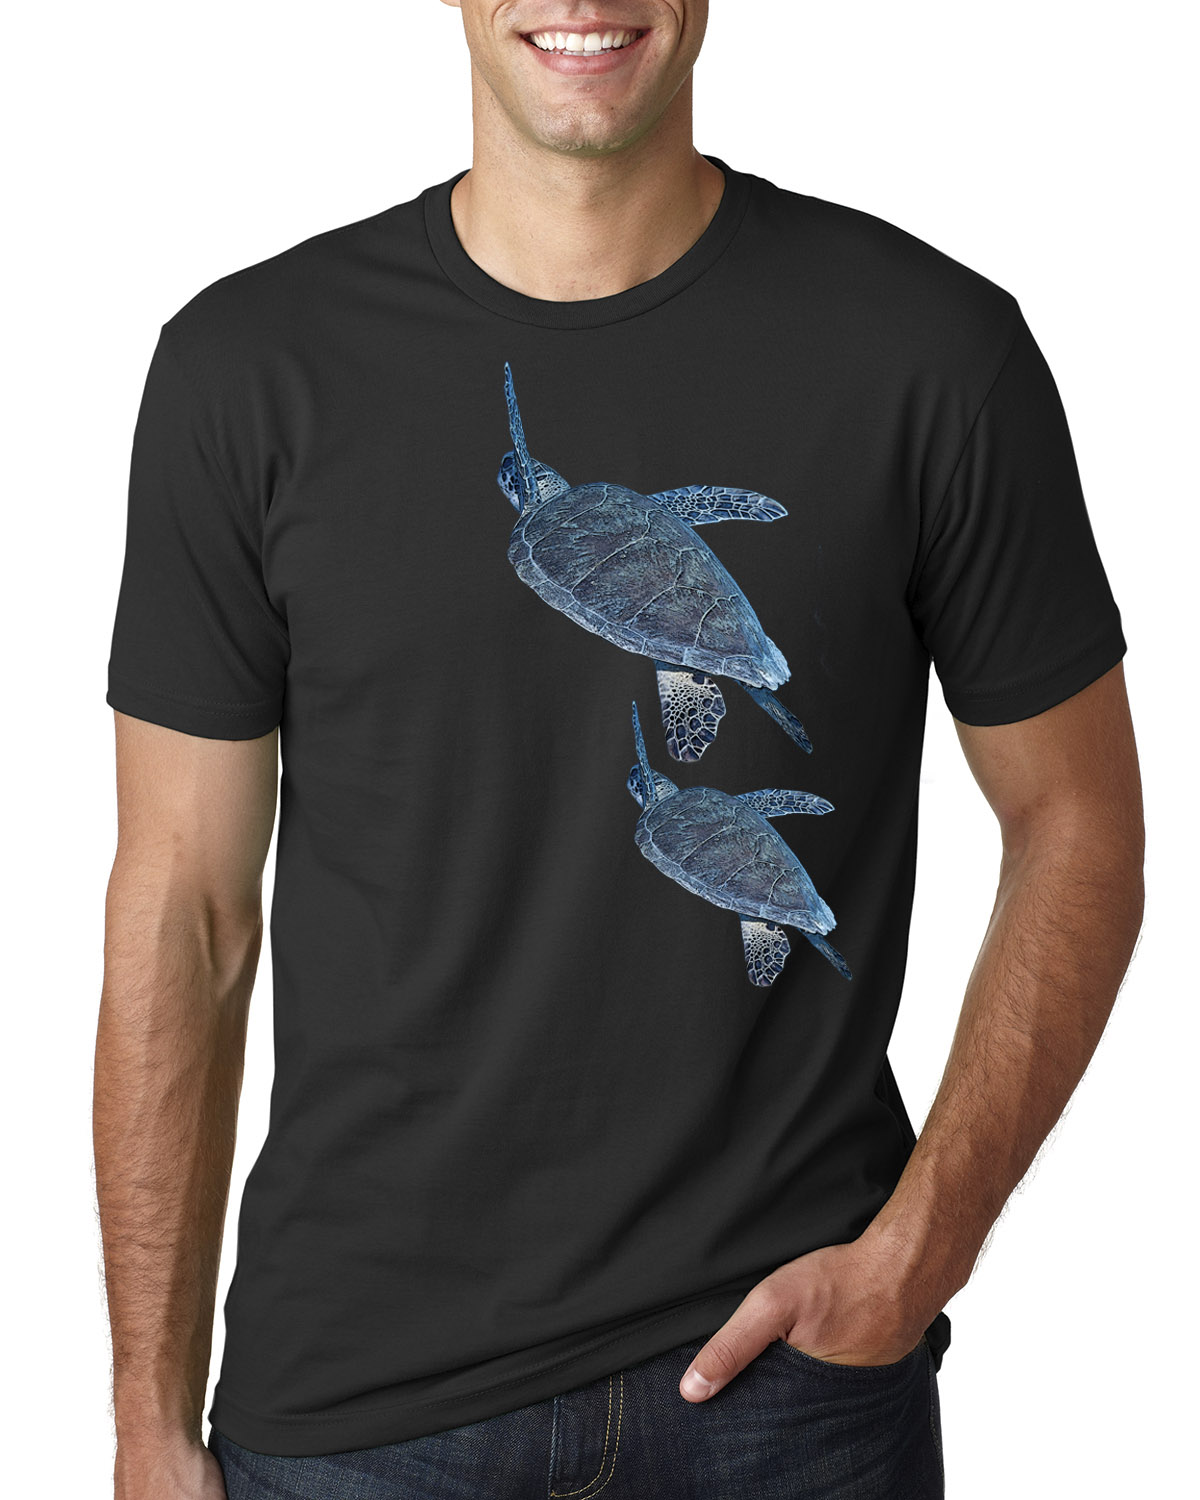 Men's Short Sleeve, Crew Neck Sea Turtle T-shirt (Black)